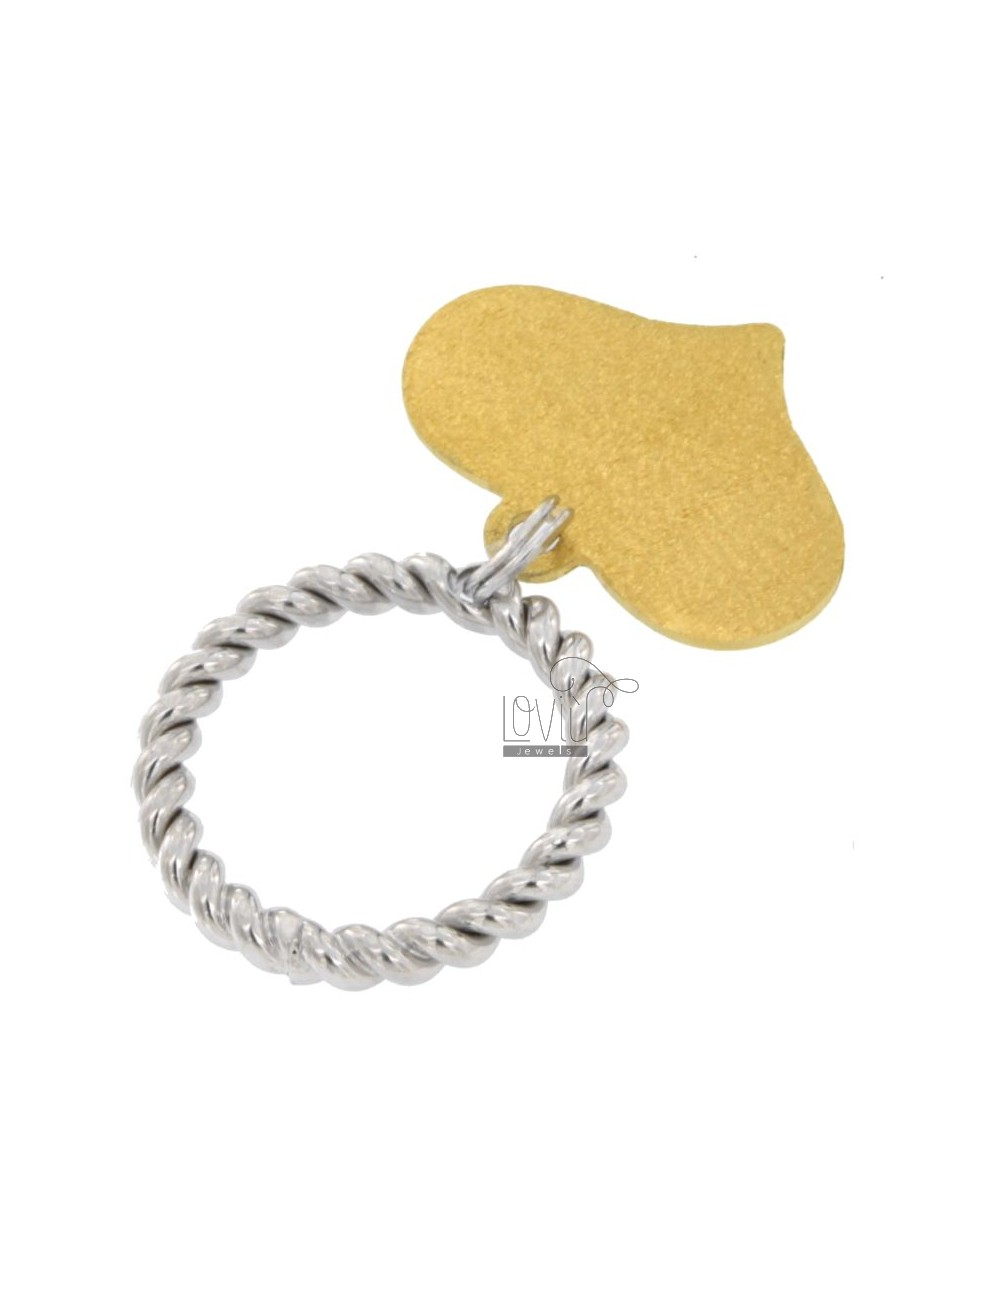 TORCHON RING WITH HEART PENDANT AG RHODIUM AND GOLD PLATED SIZE 925 13 TIT